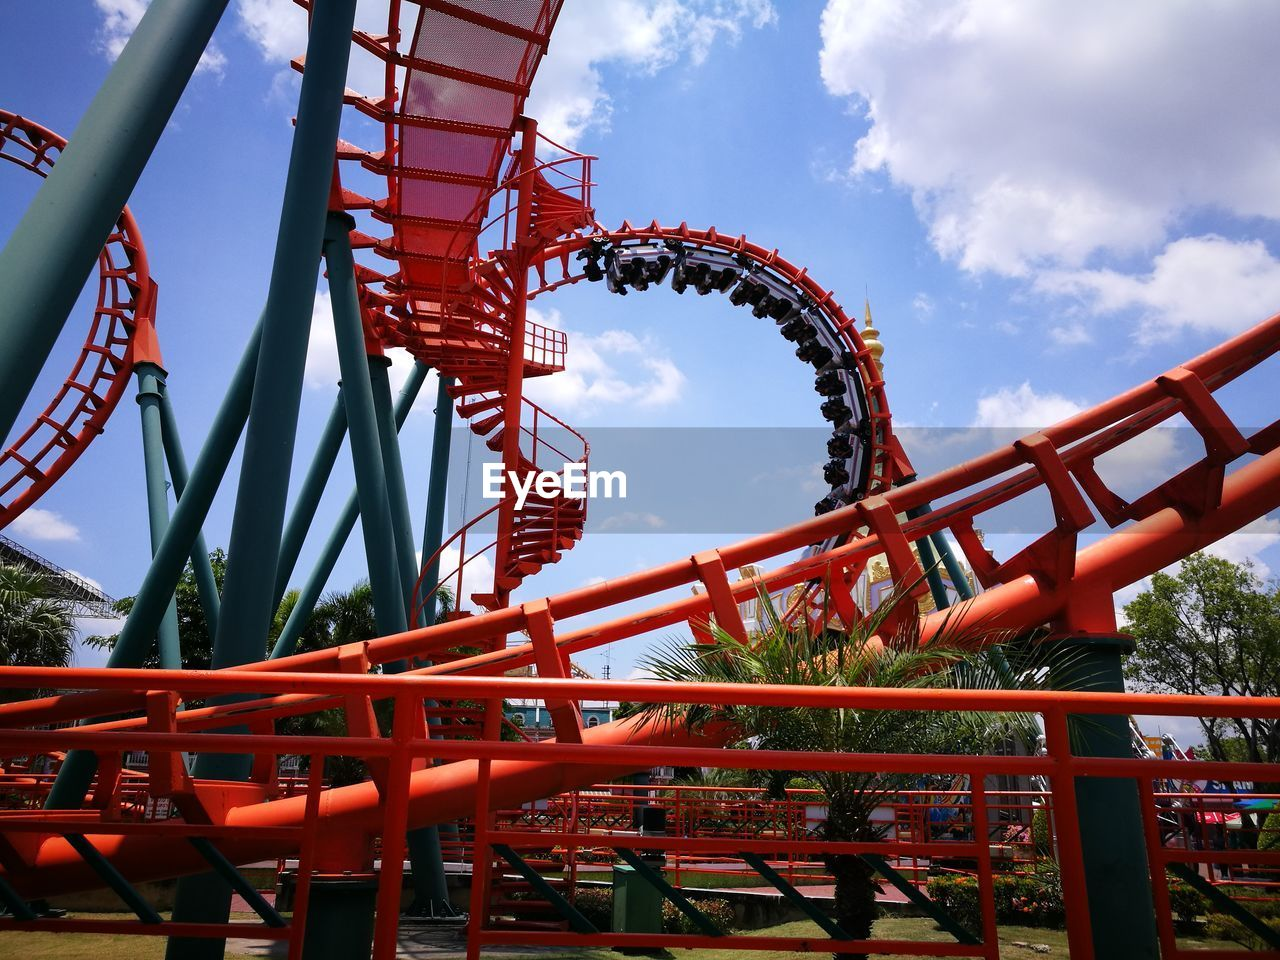 amusement park, amusement park ride, sky, arts culture and entertainment, leisure activity, metal, low angle view, built structure, architecture, rollercoaster, day, enjoyment, fun, nature, cloud - sky, excitement, red, fairground, real people, lifestyles, positive emotion, outdoors, jungle gym